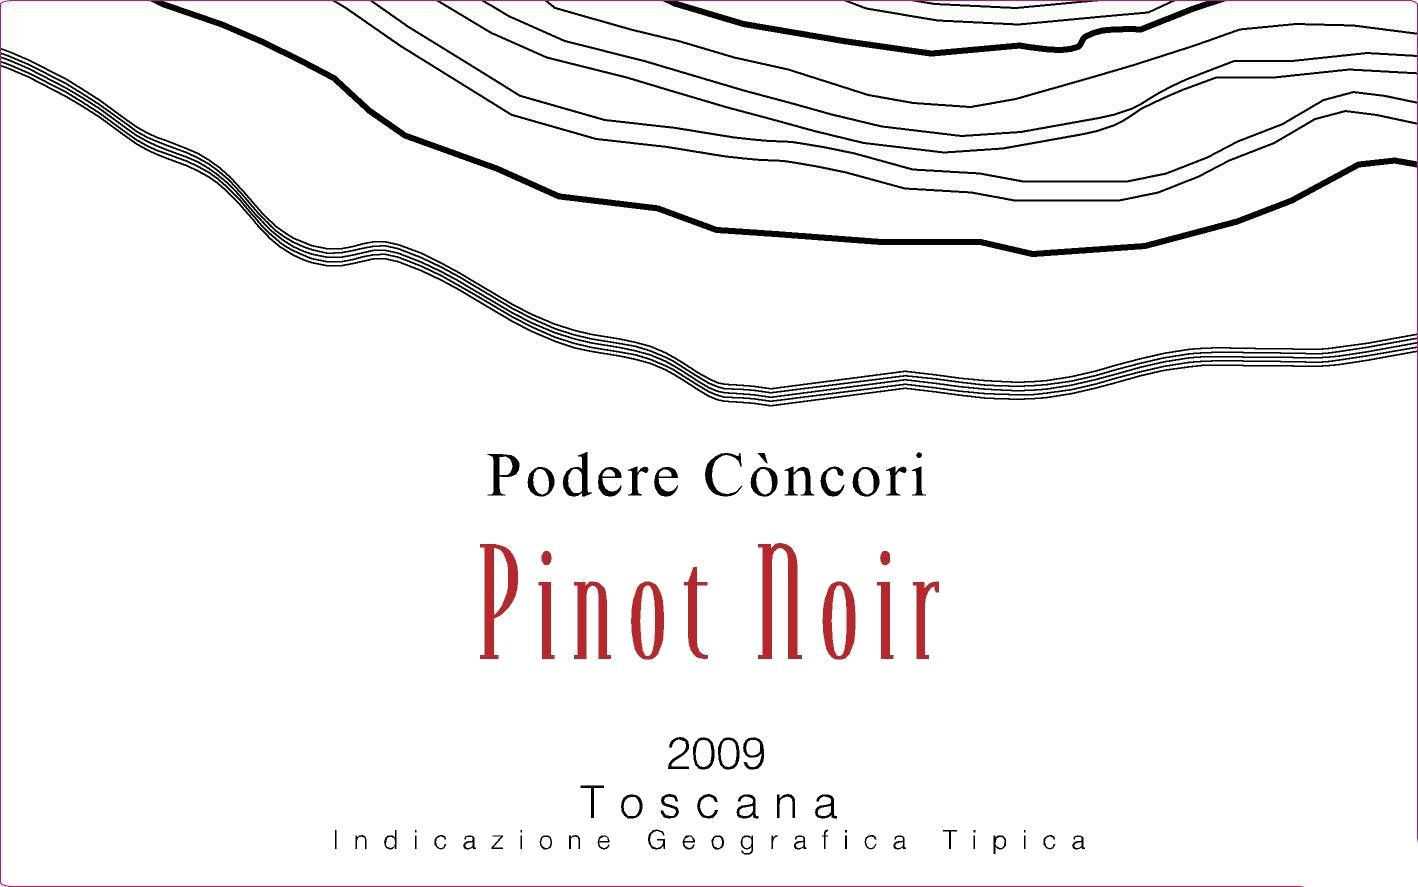 Podere Concori Toscana Pinot Noir 2009 Front Label